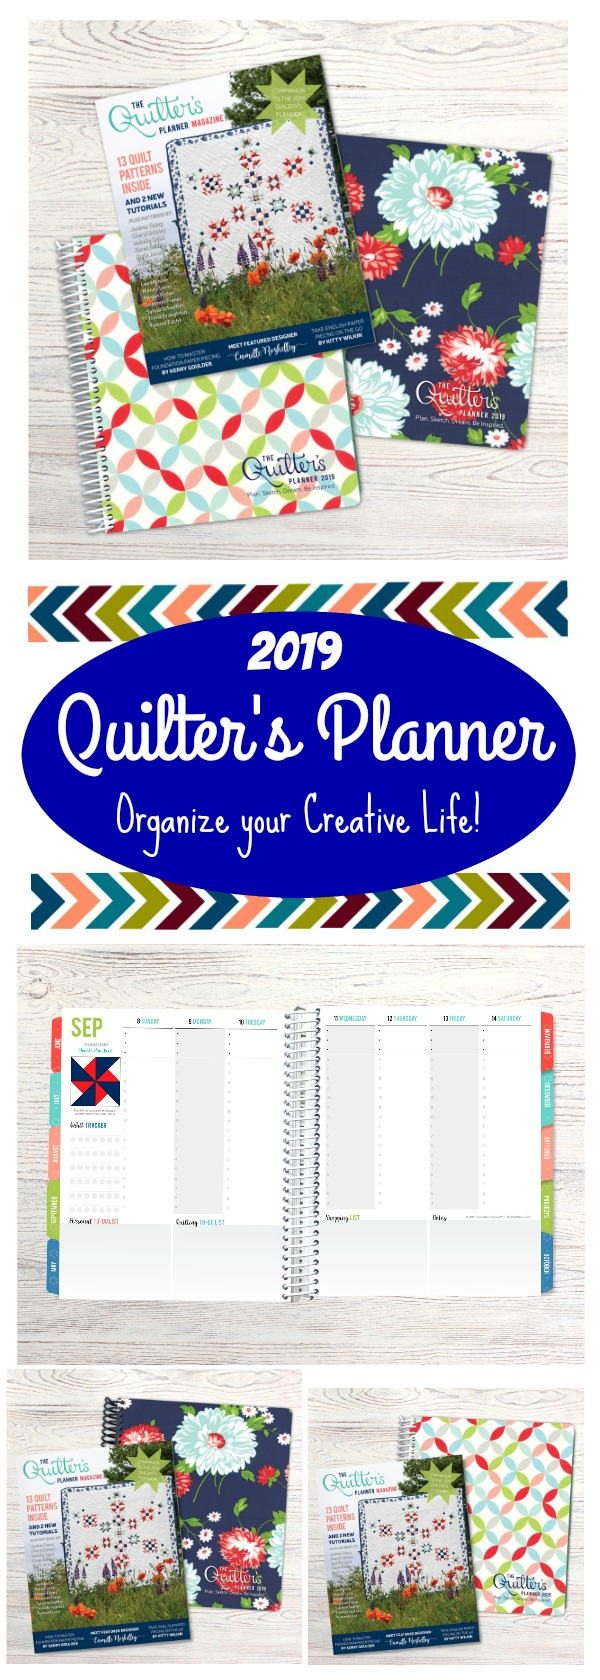 2019 Quilter's Planner - Planning your Creative Life! Get organized and inspired for 2019